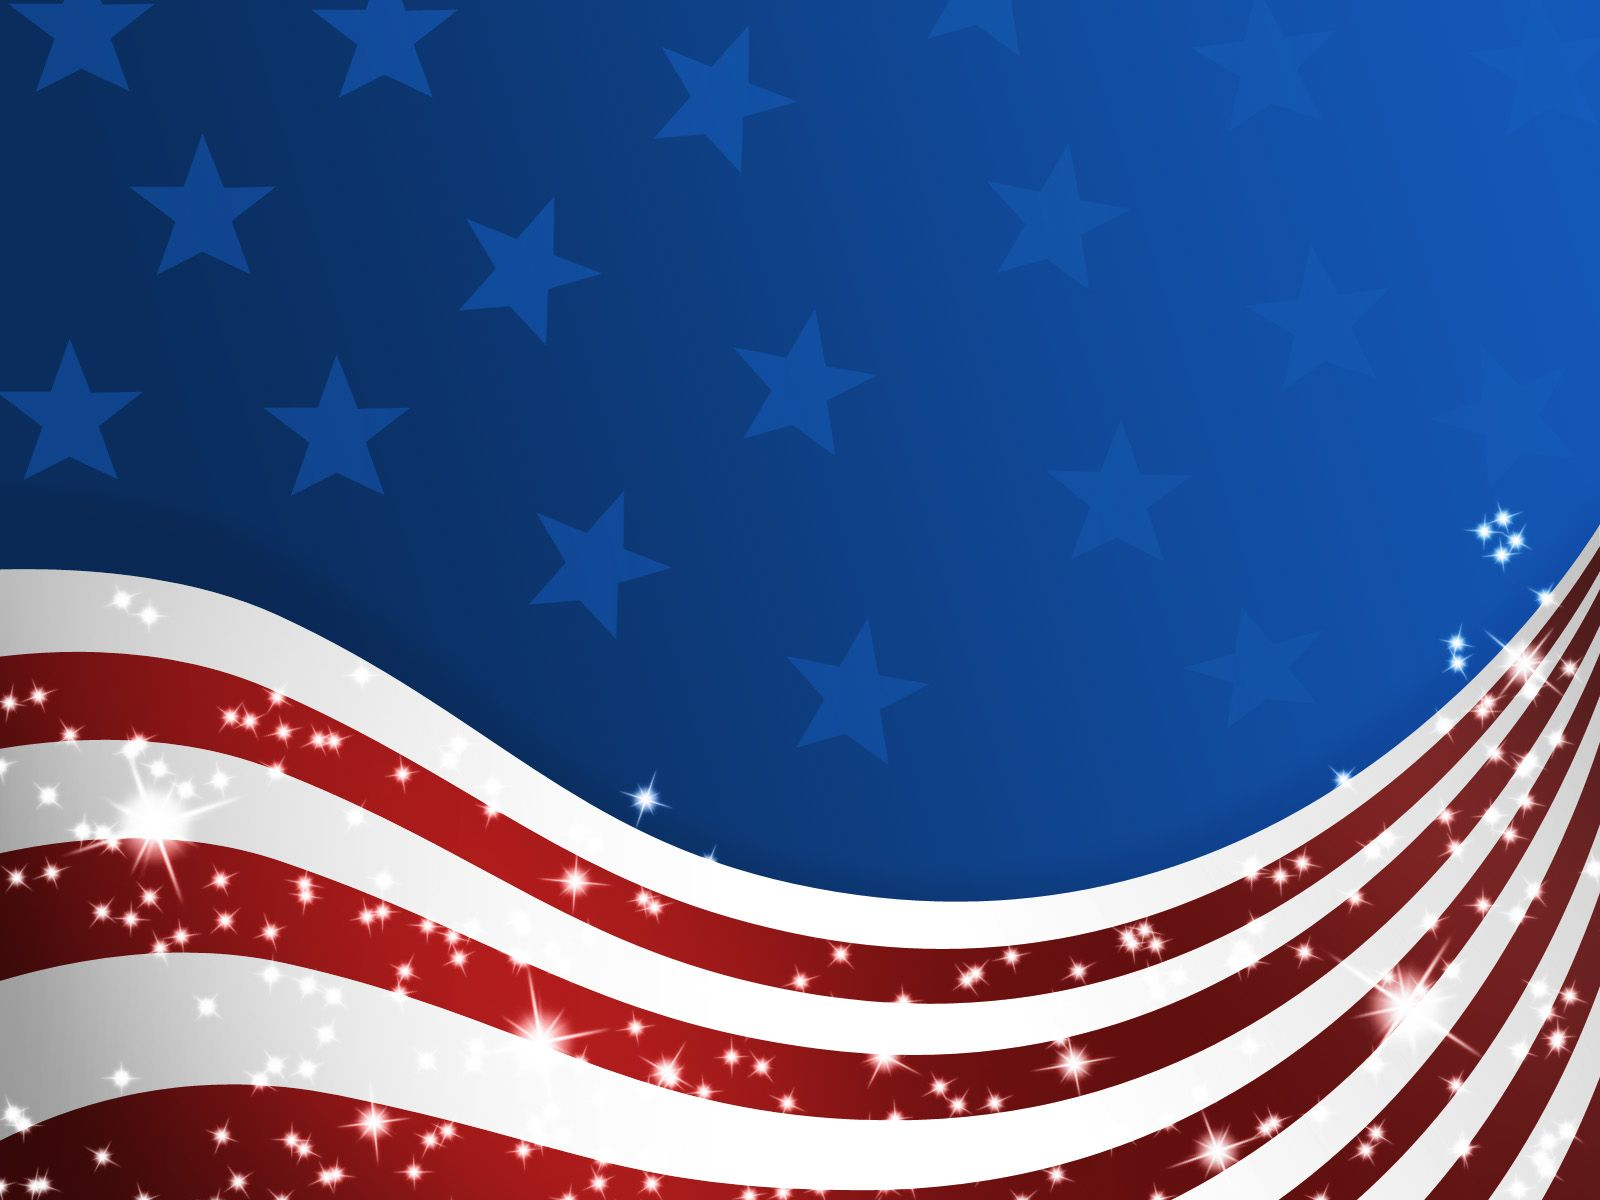 patriotic background for powerpoint images pictures becuo red